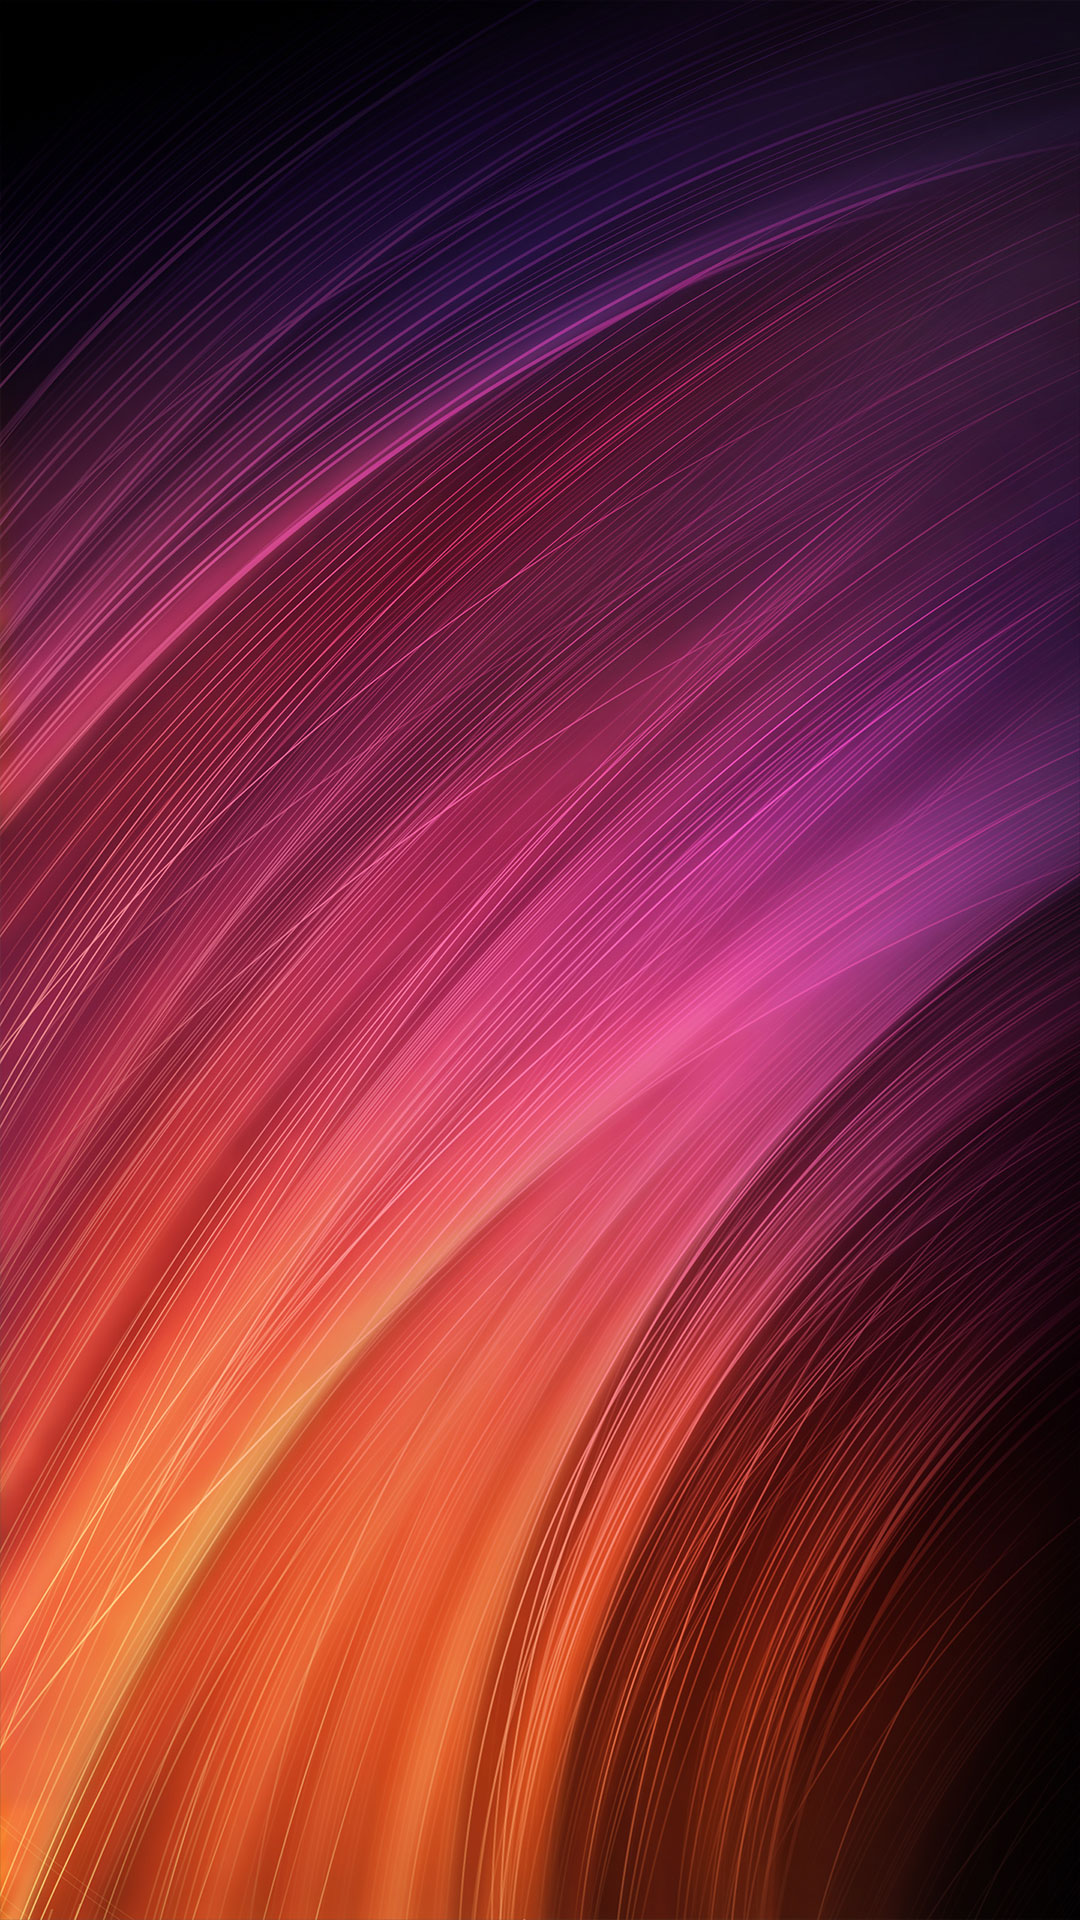 Download Xiaomi Redmi Note 4 Stock Wallpapers HD Wallpapers Download Free Images Wallpaper [1000image.com]